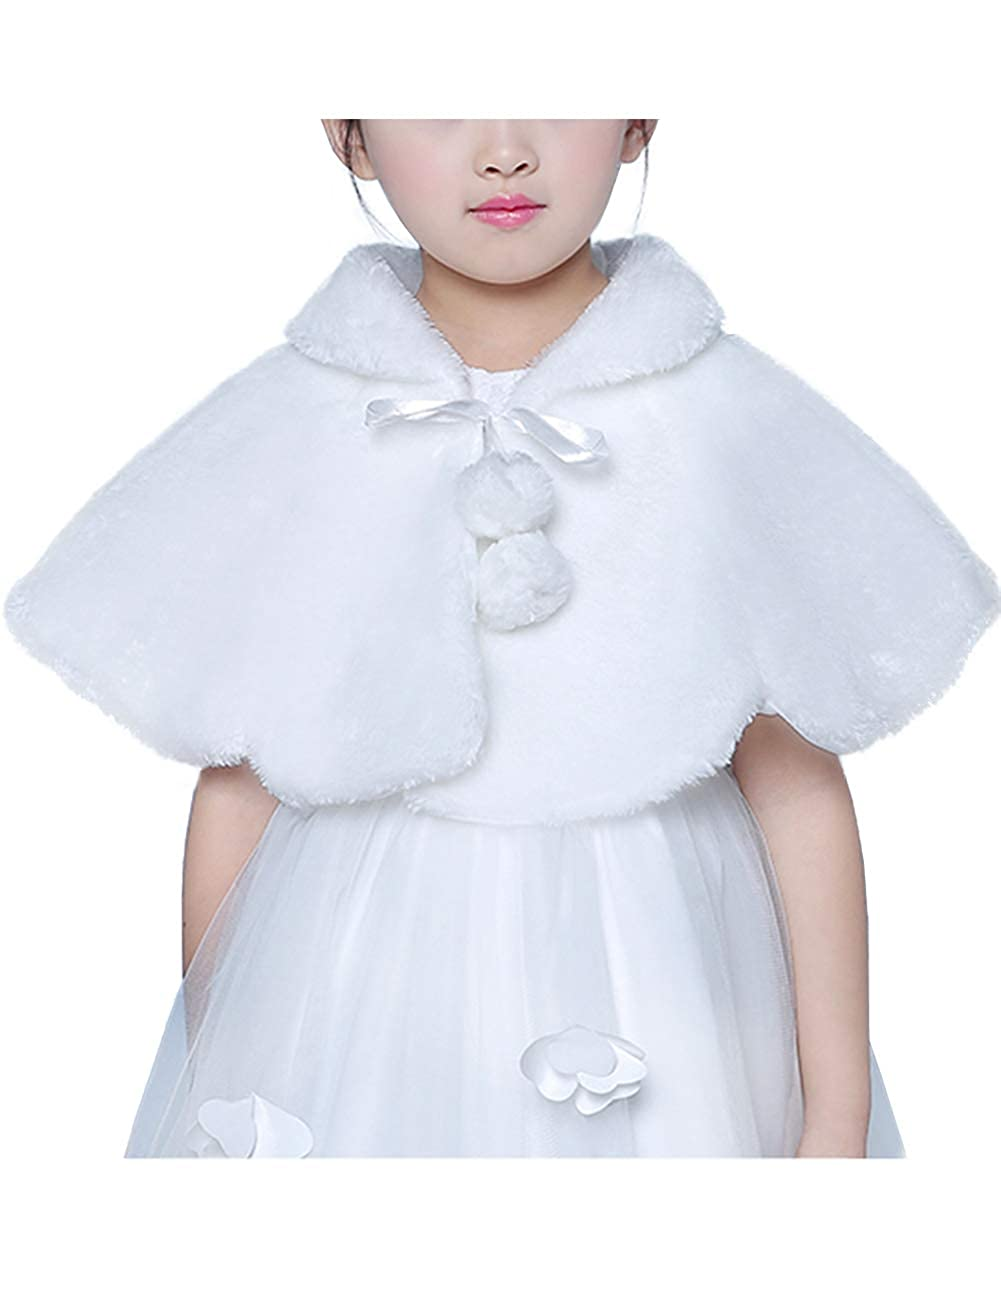 Flower Girl Faux Fur Shawl Wraps Cape Shrug Cloak Kids First Communion Off White HSD235-Ball